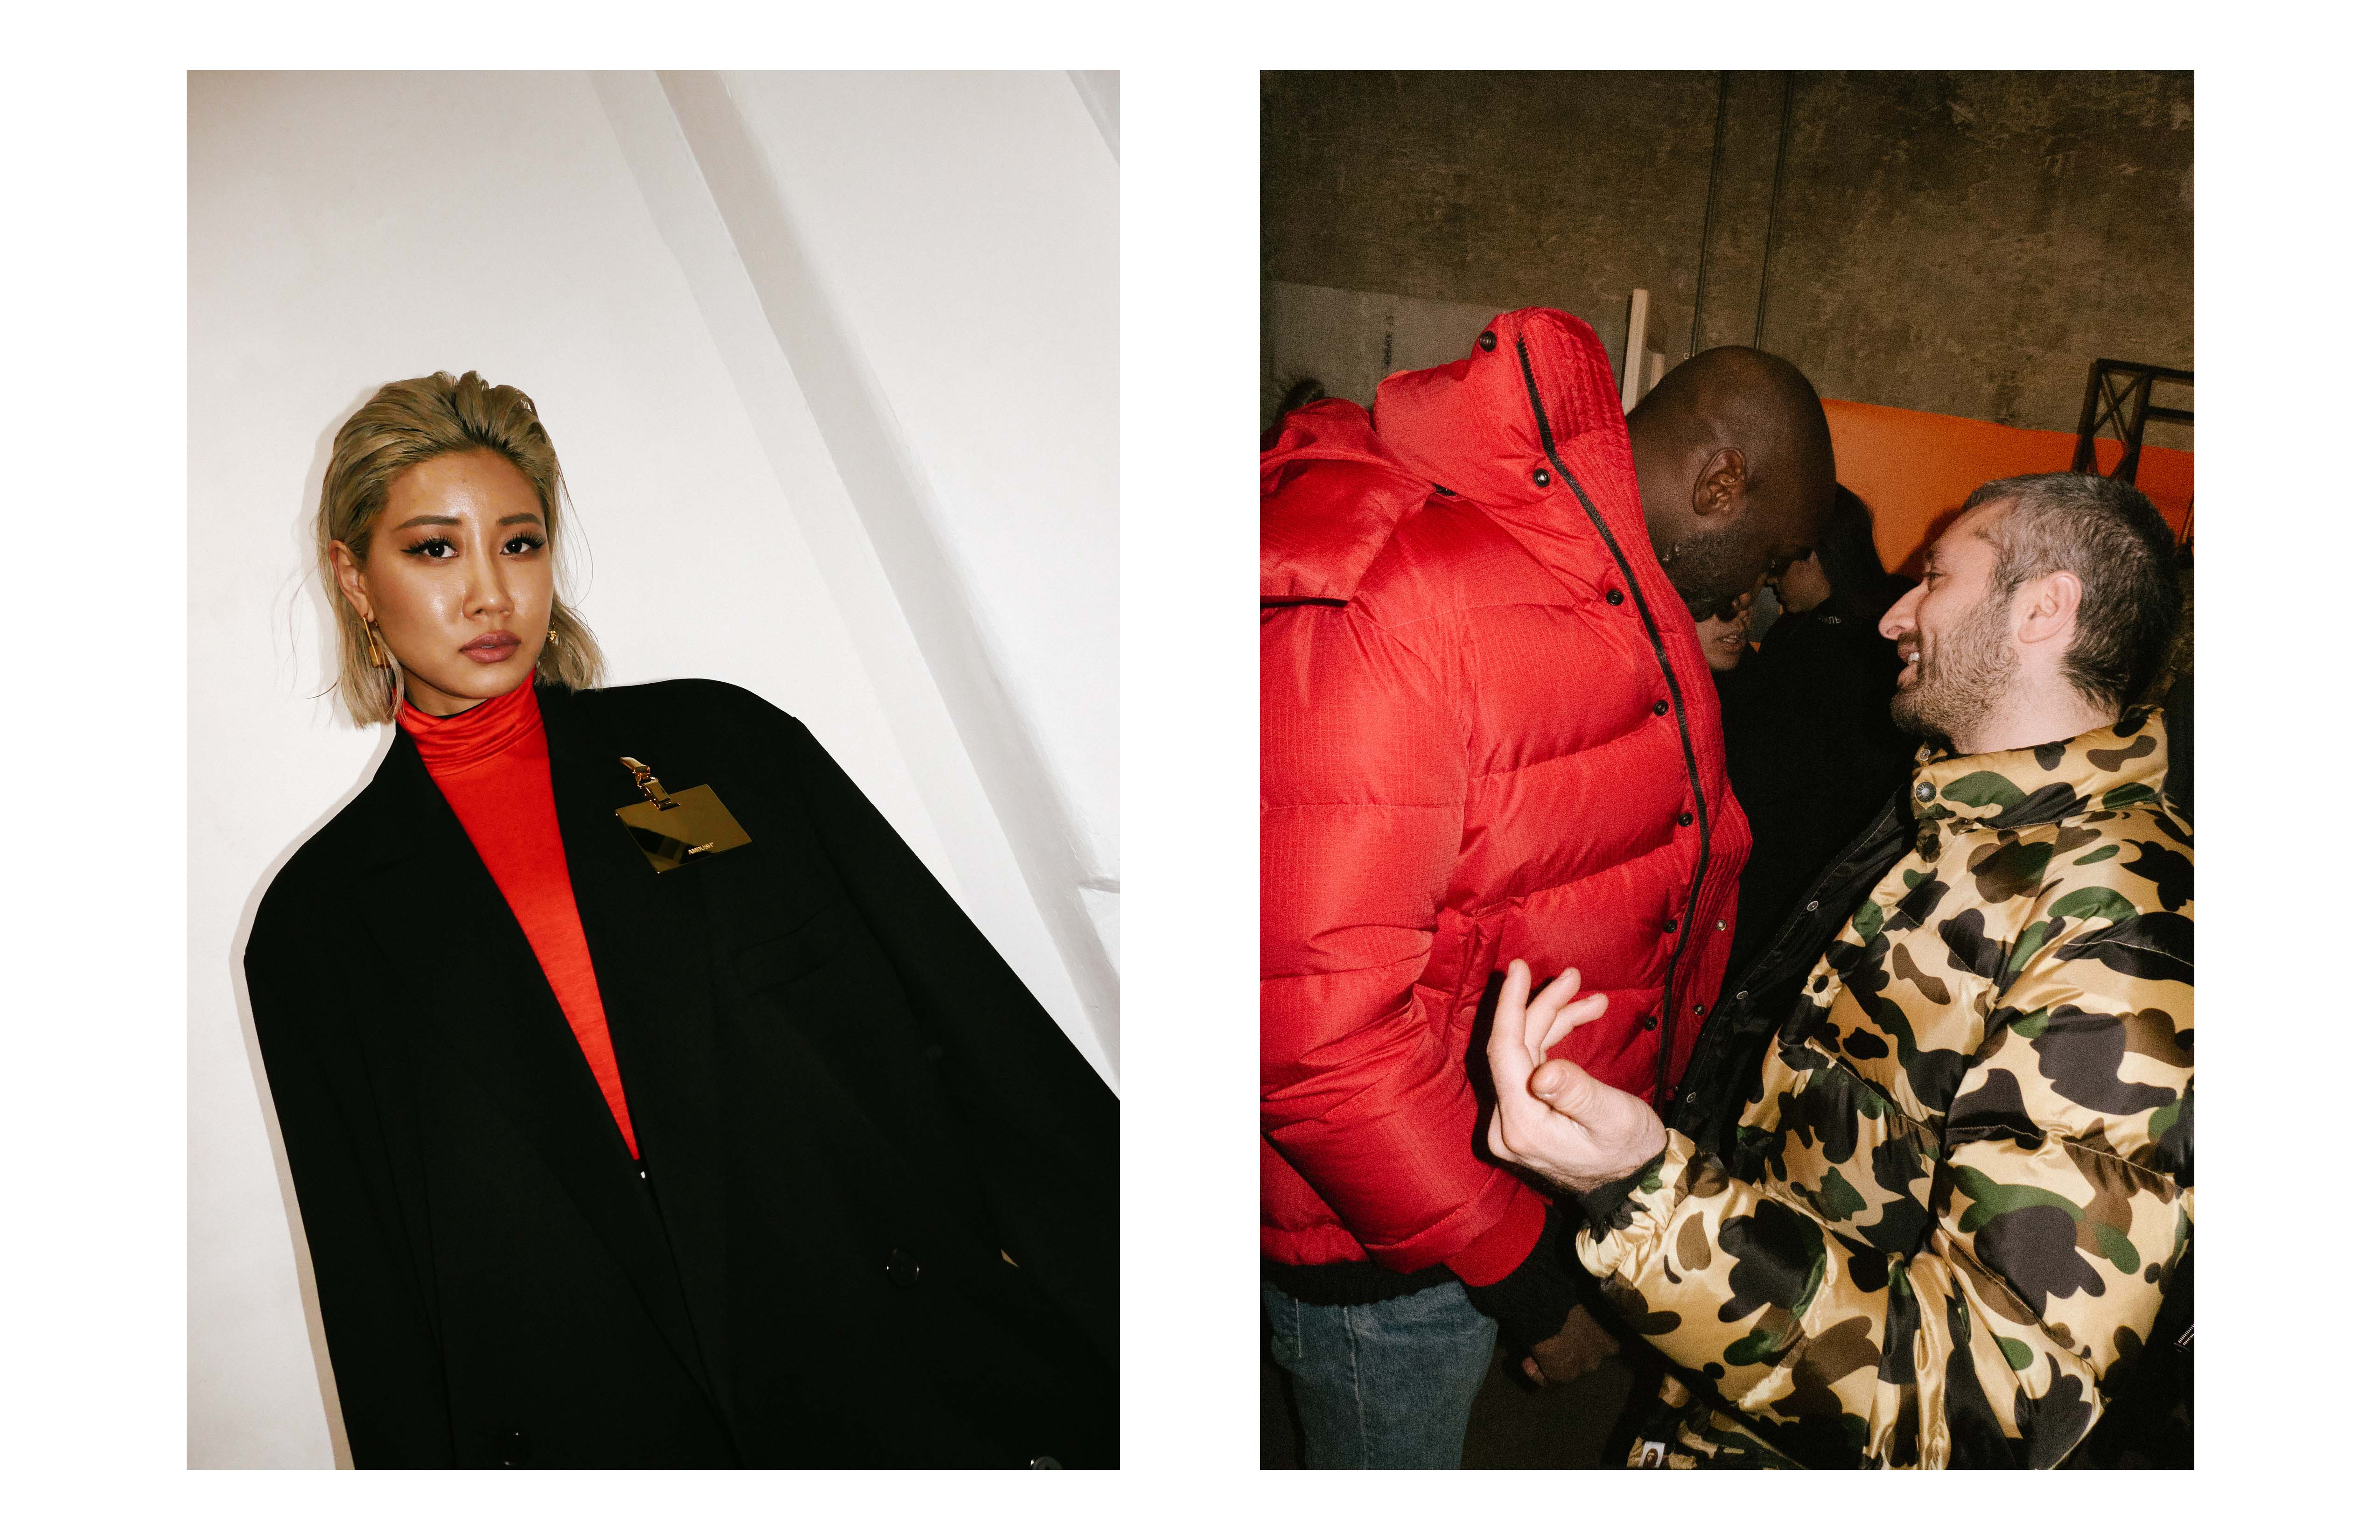 From left to right : Yoon Ambush, Virgil Abloh and Arthur Kar